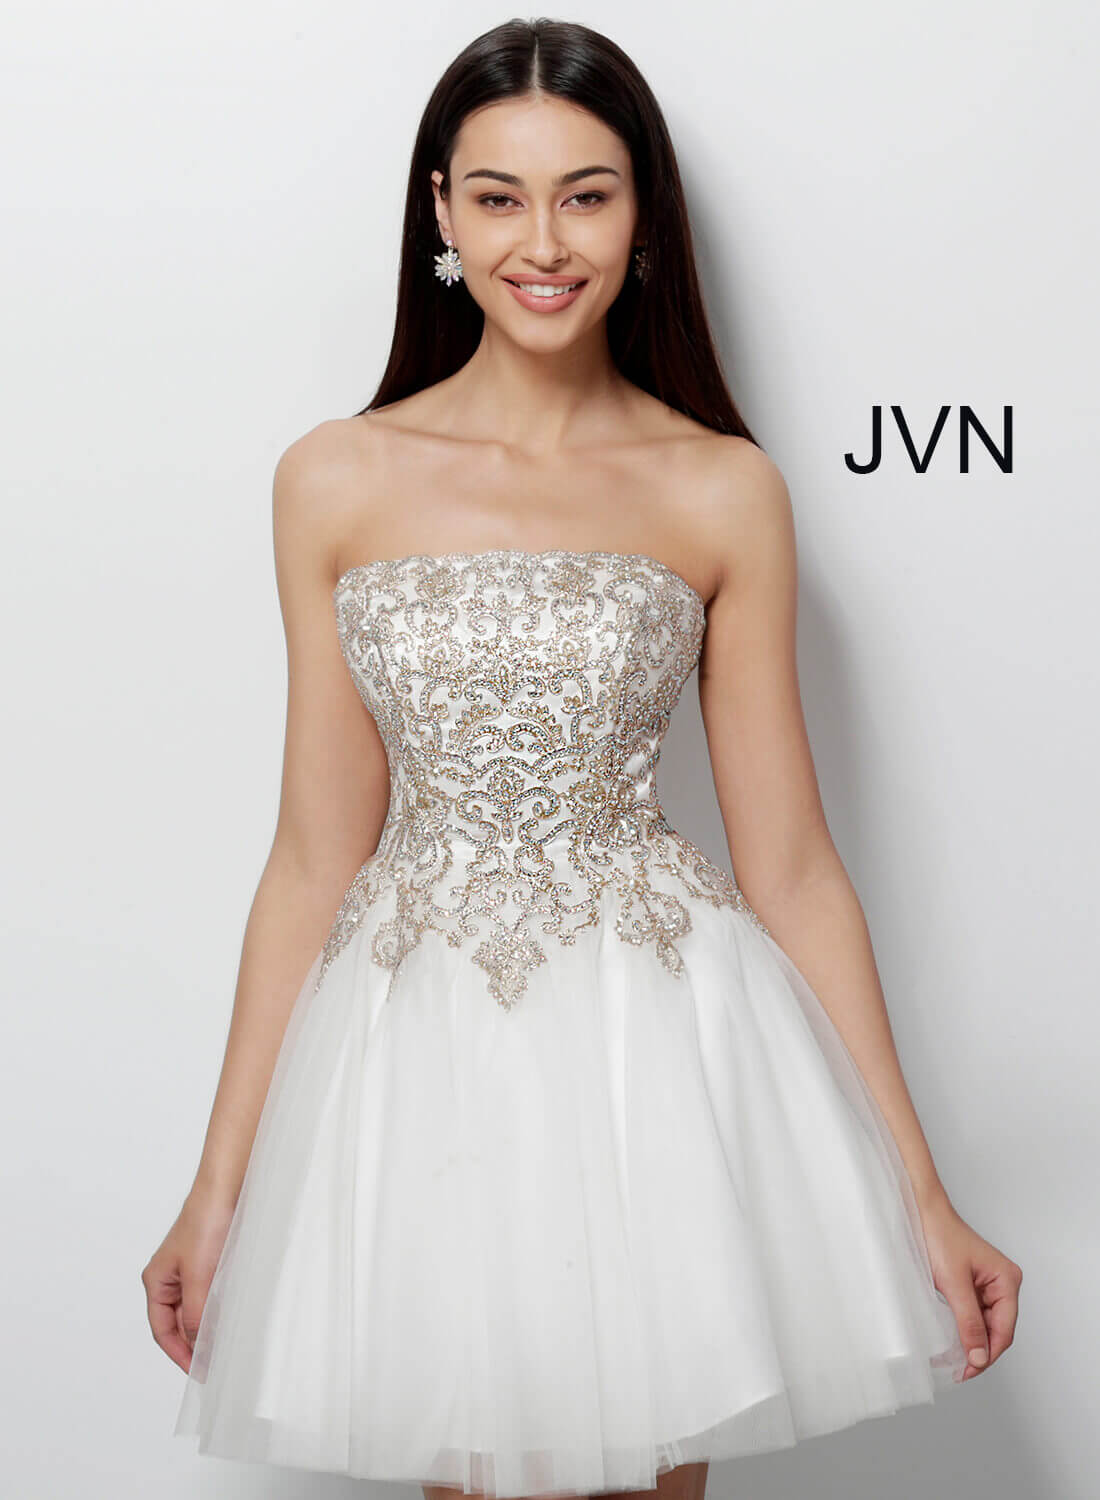 Off White Gold Short Fit And Flare Strapless Straight Neckline Dress